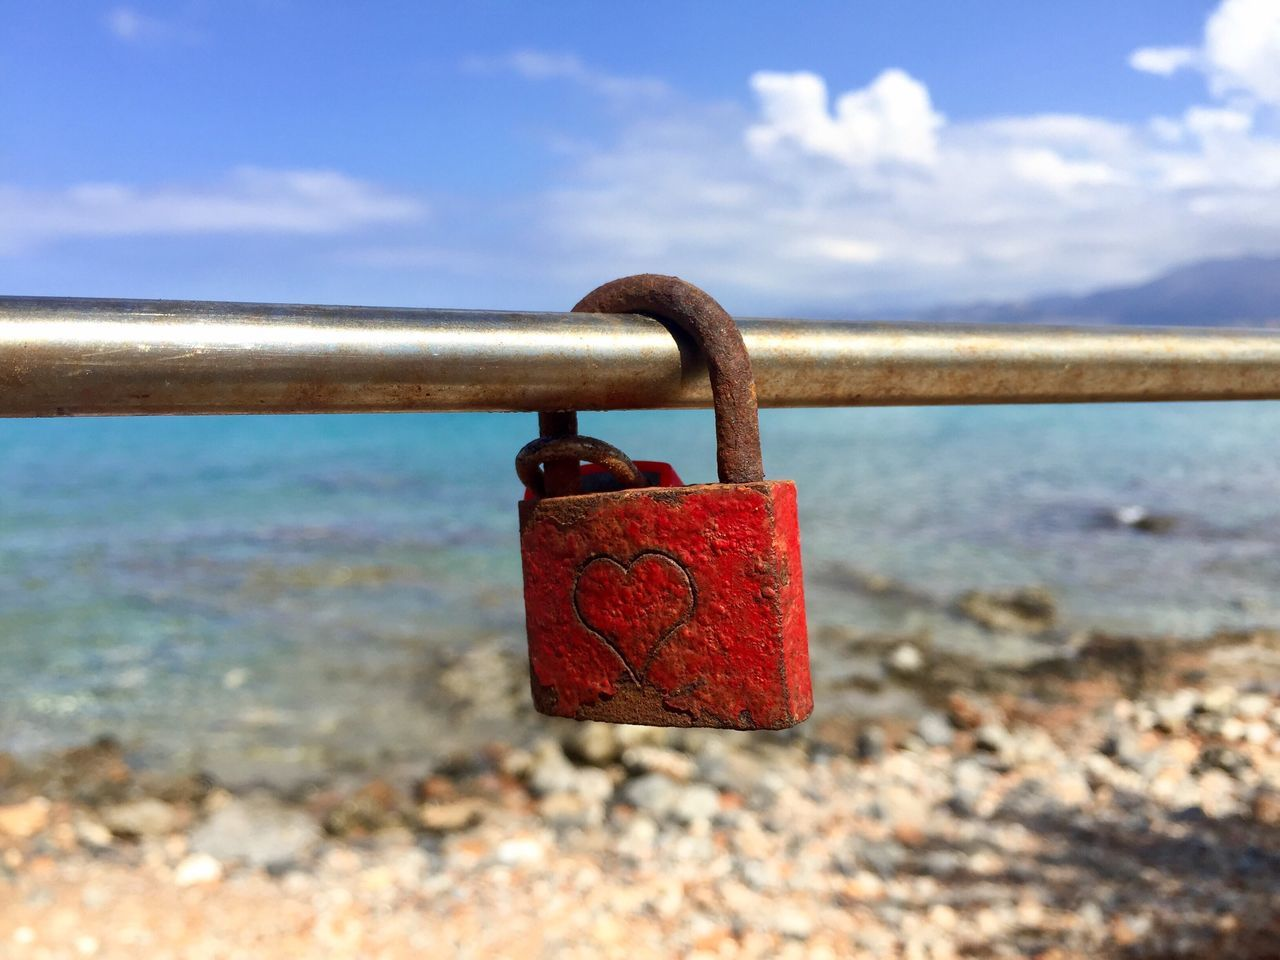 Red padlock with heart on it on a bridge over the sea Padlock Metal Safety Love Lock Security Close-up Protection Lock Sky Love Focus On Foreground Outdoors Day No People Hope Cloud - Sky Water Bridge Sea Lock Love Padlock Summer